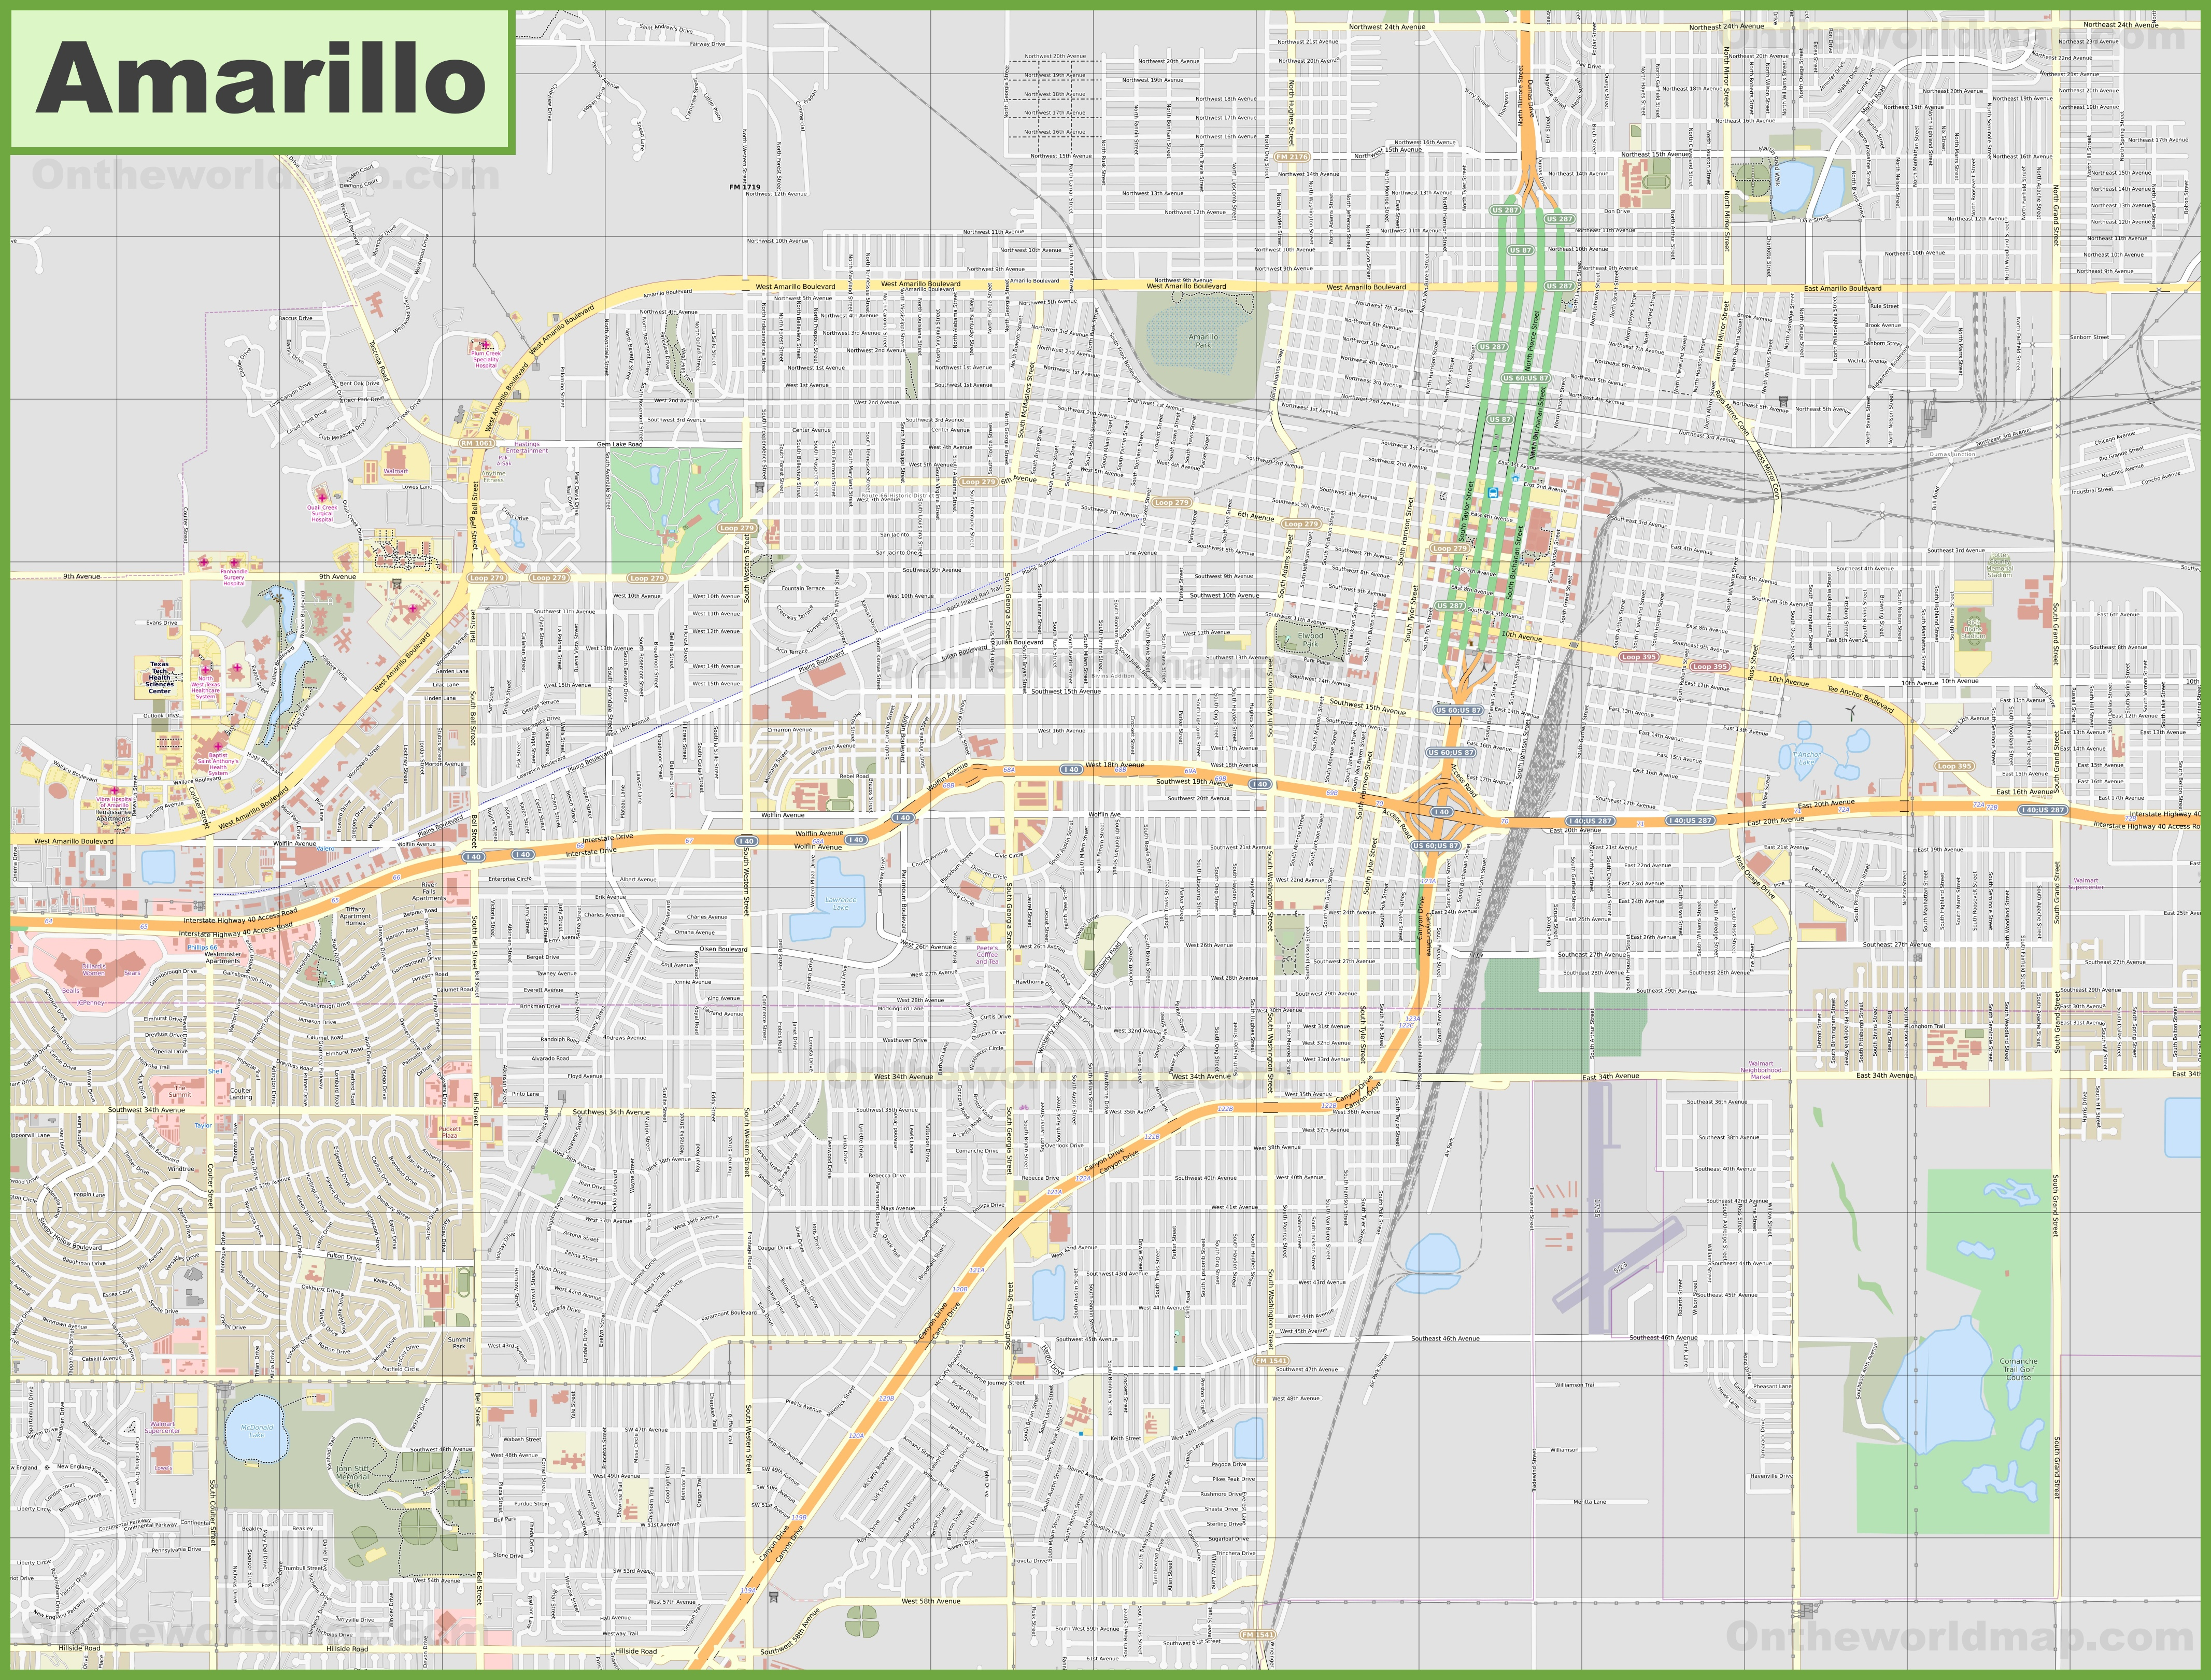 large-detailed-map-of-amarillo Large Map Of Indianapolis on map showing townships of indianapolis, united states map indianapolis, cities near indianapolis, topographic map of indianapolis, crime view indianapolis, skyline of indianapolis, pubs of mass ave indianapolis, city street map of indianapolis, printable street maps indianapolis, detailed map of indianapolis, map of north indianapolis, castles in indianapolis, 46203 zip code map indianapolis, counties surrounding indianapolis, conrad hotel indianapolis, methodist hospital of indianapolis, show map of indianapolis, street names in indianapolis, map of metro indianapolis, neighborhoods of indianapolis,